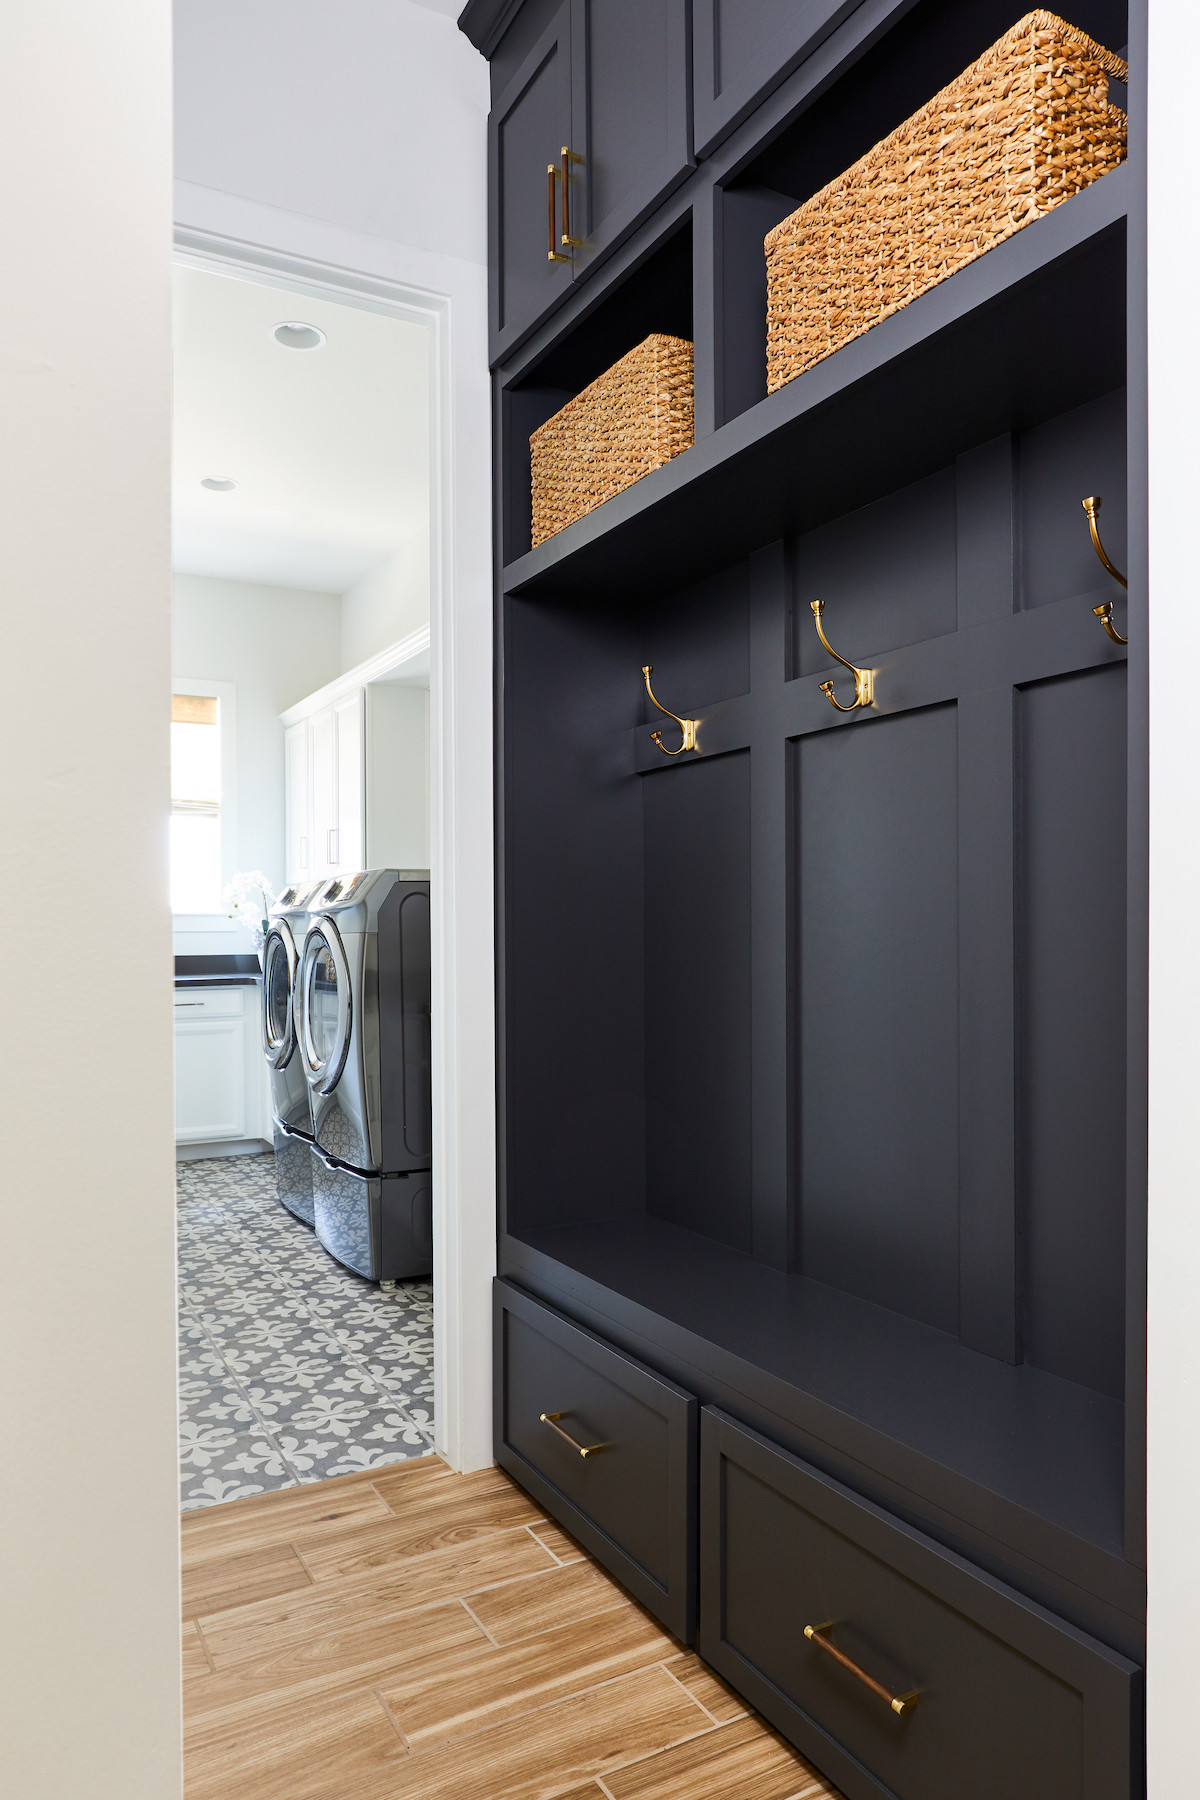 Phoenix Based Full Service Interior Designer 38th Street Mudroom